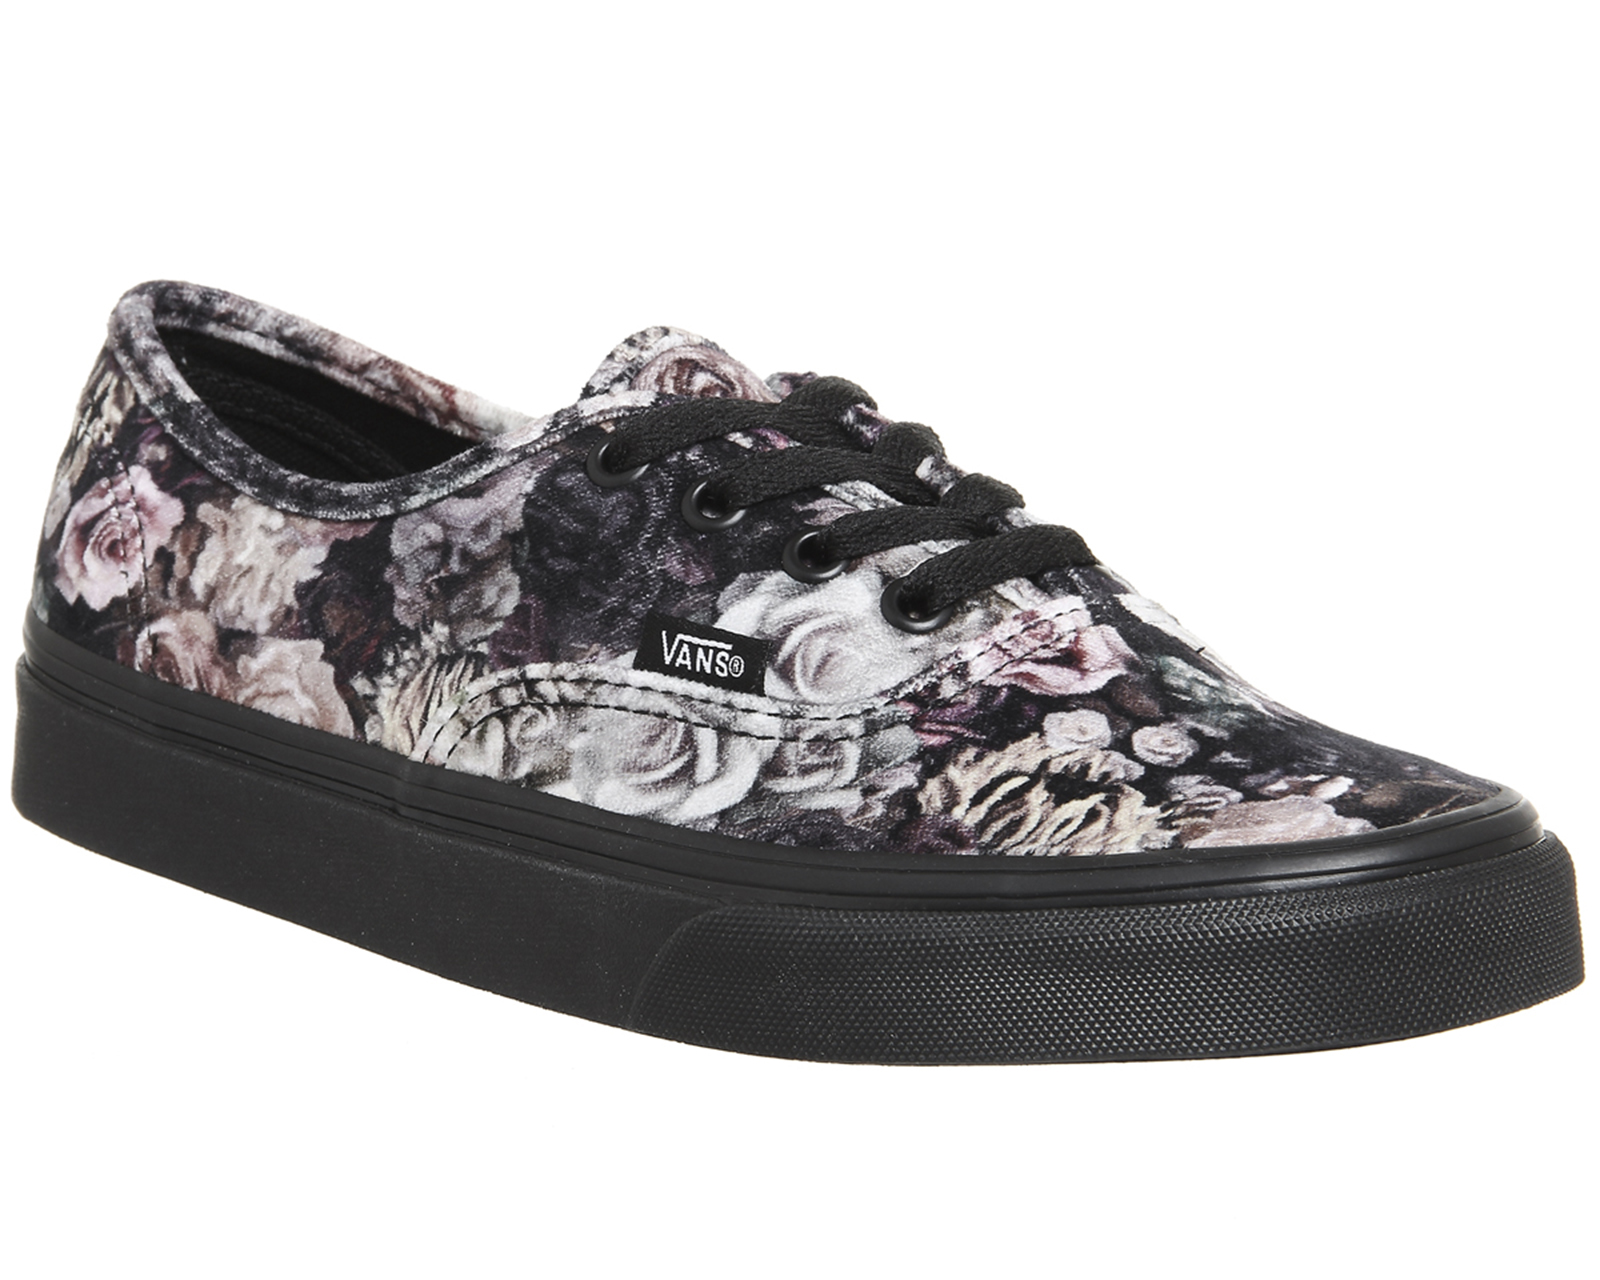 69e41c35bb5 Sentinel Womens Vans Authentic Trainers VELVET FLORAL BLACK Trainers Shoes